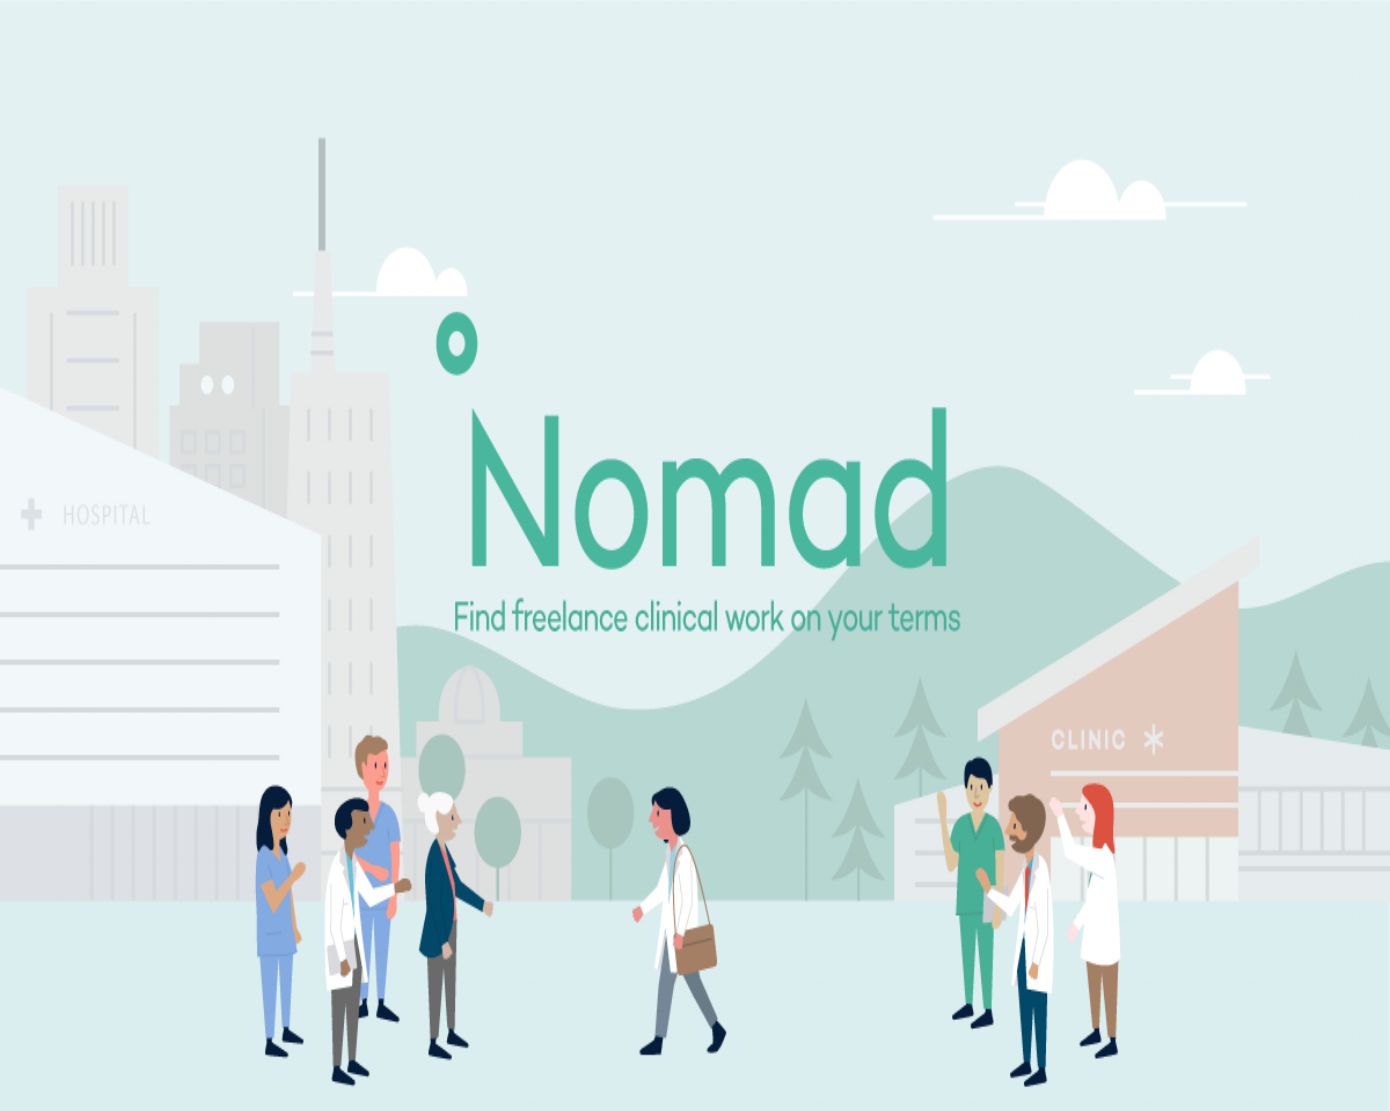 NOMAD HEALTH - BUSINESS WIRE - Expands Beyond Freelance, LaunchES FULL-TIME hEALTHCARE jOBS